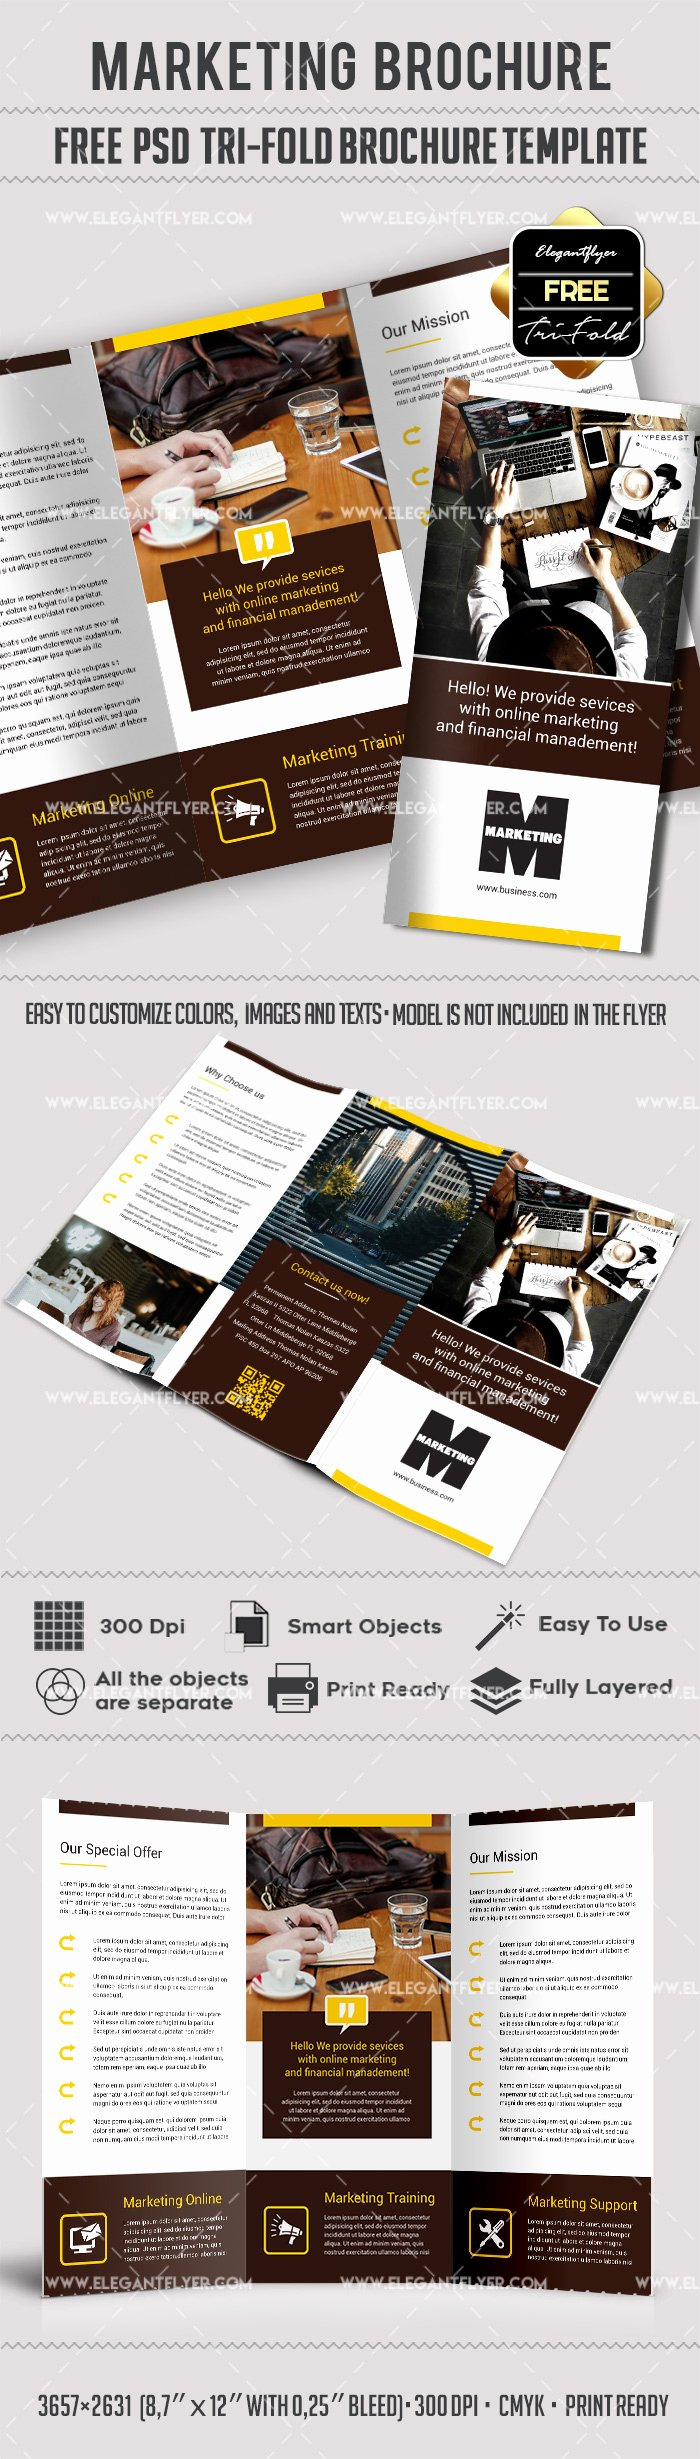 Tri Fold Brochure Psd Template New Marketing – Free Tri Fold Psd Brochure Template – by Elegantflyer